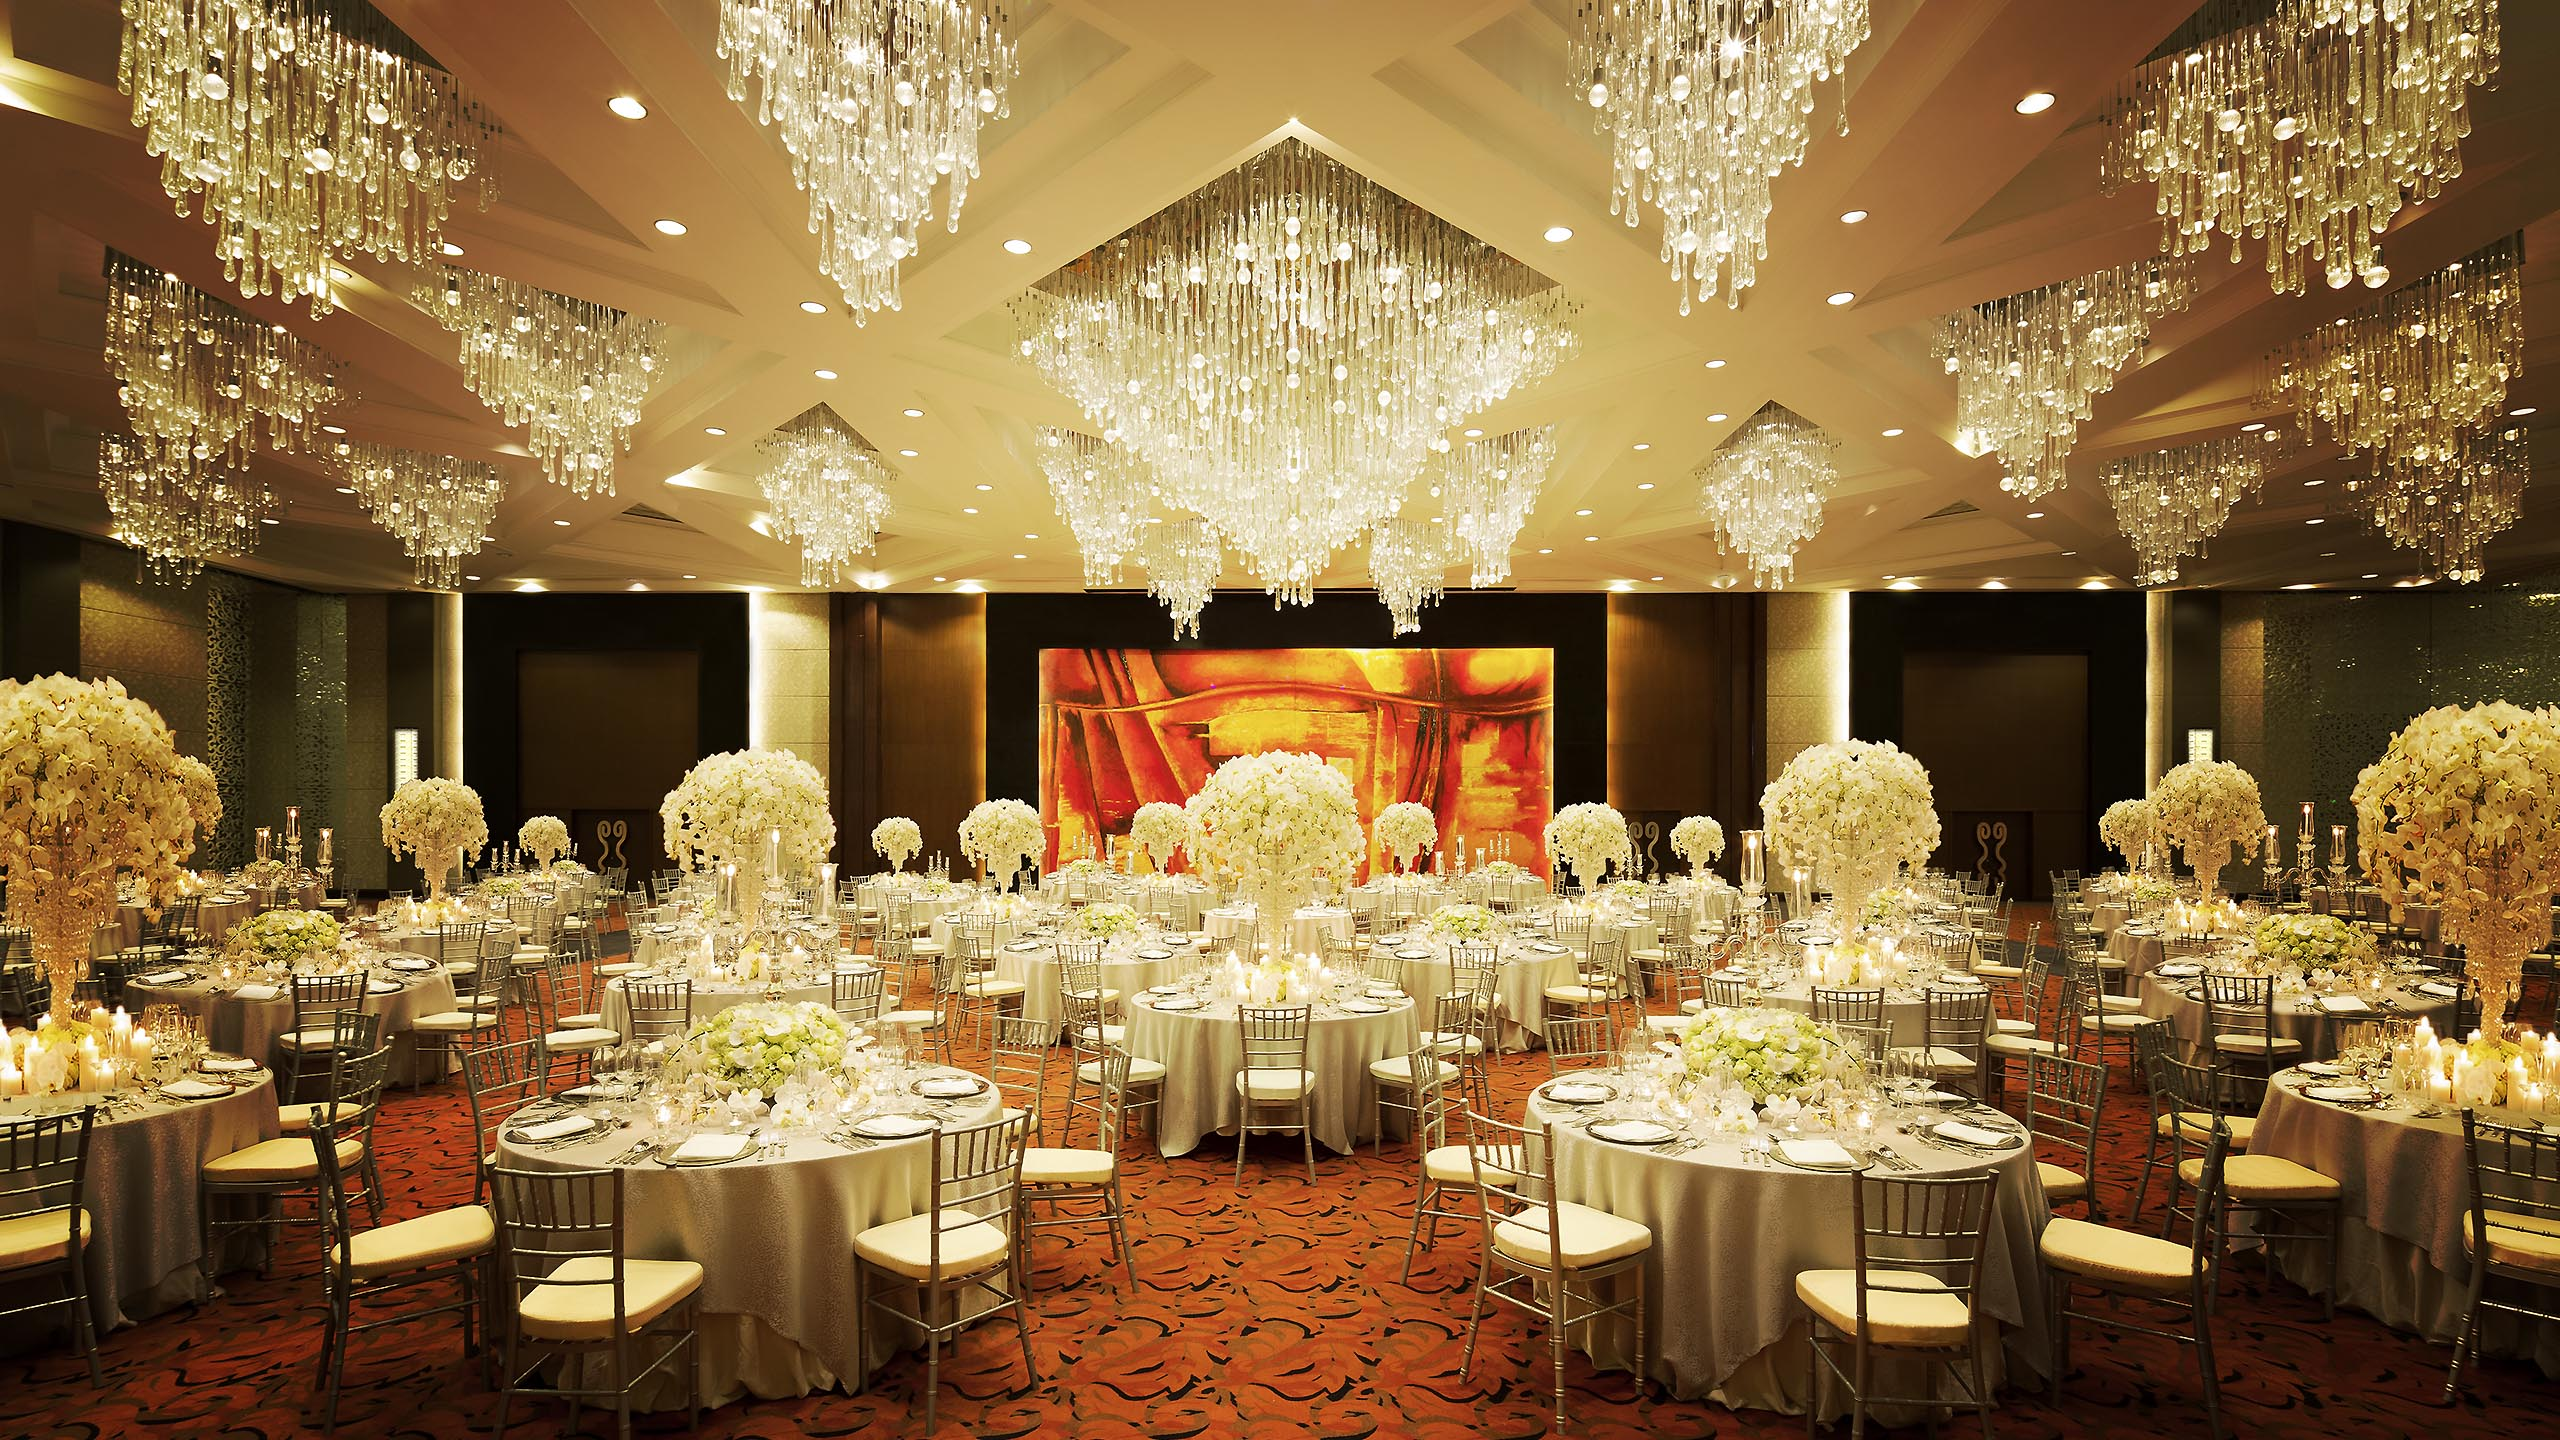 Manila Pavilion Hotel Wedding Packages Ideas 2018 Clic Package Bayview Park Philippine Weddings